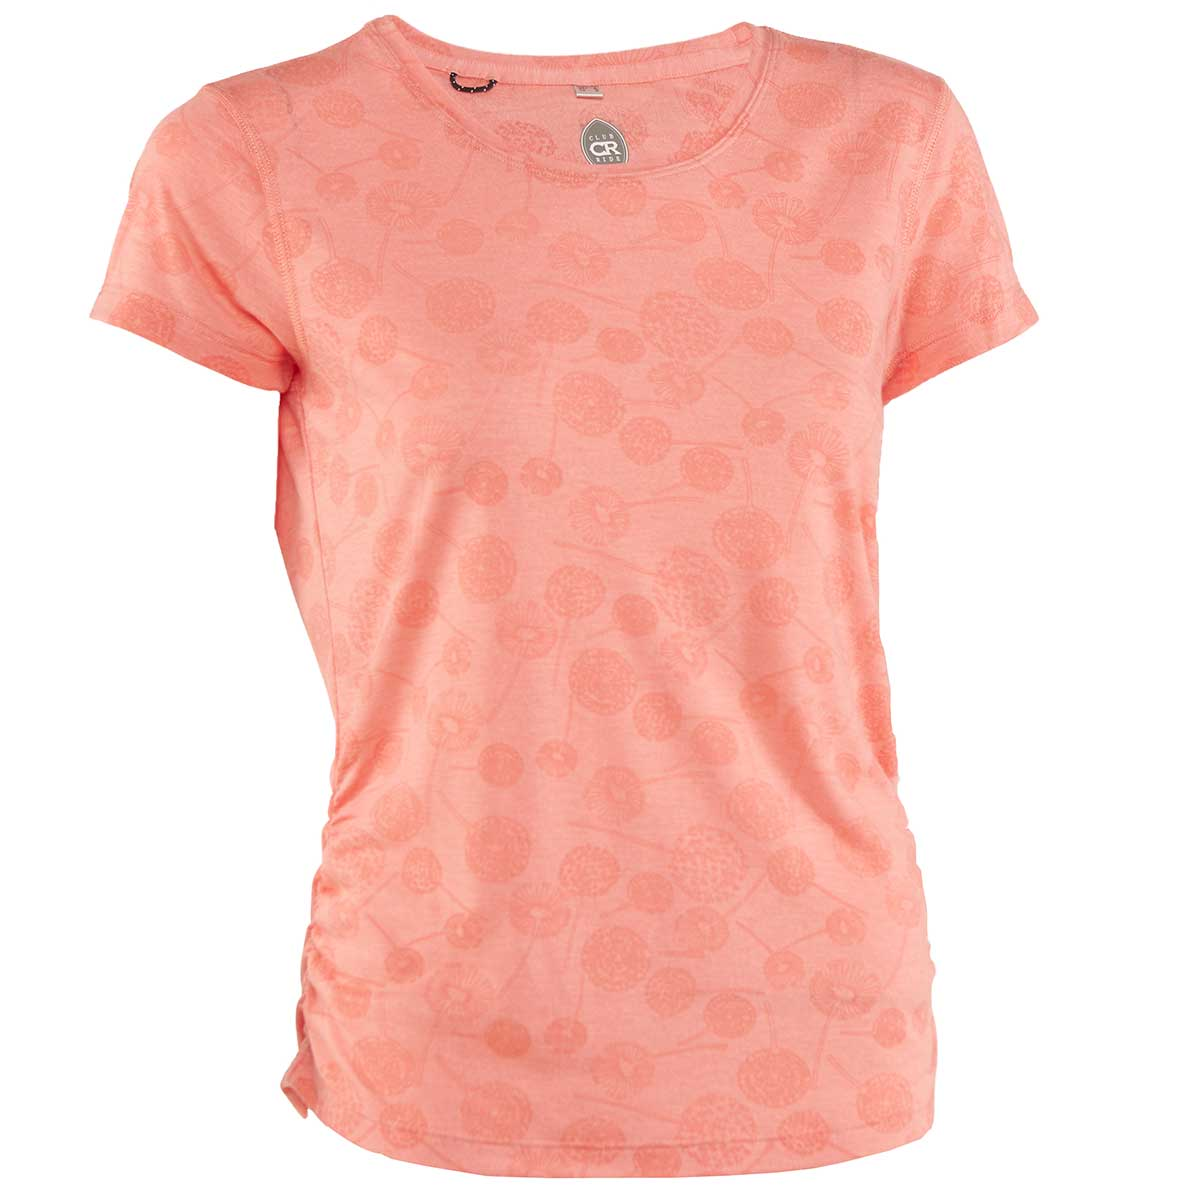 Club Ride women's Dandy Cute Jersey in Dusty Pink